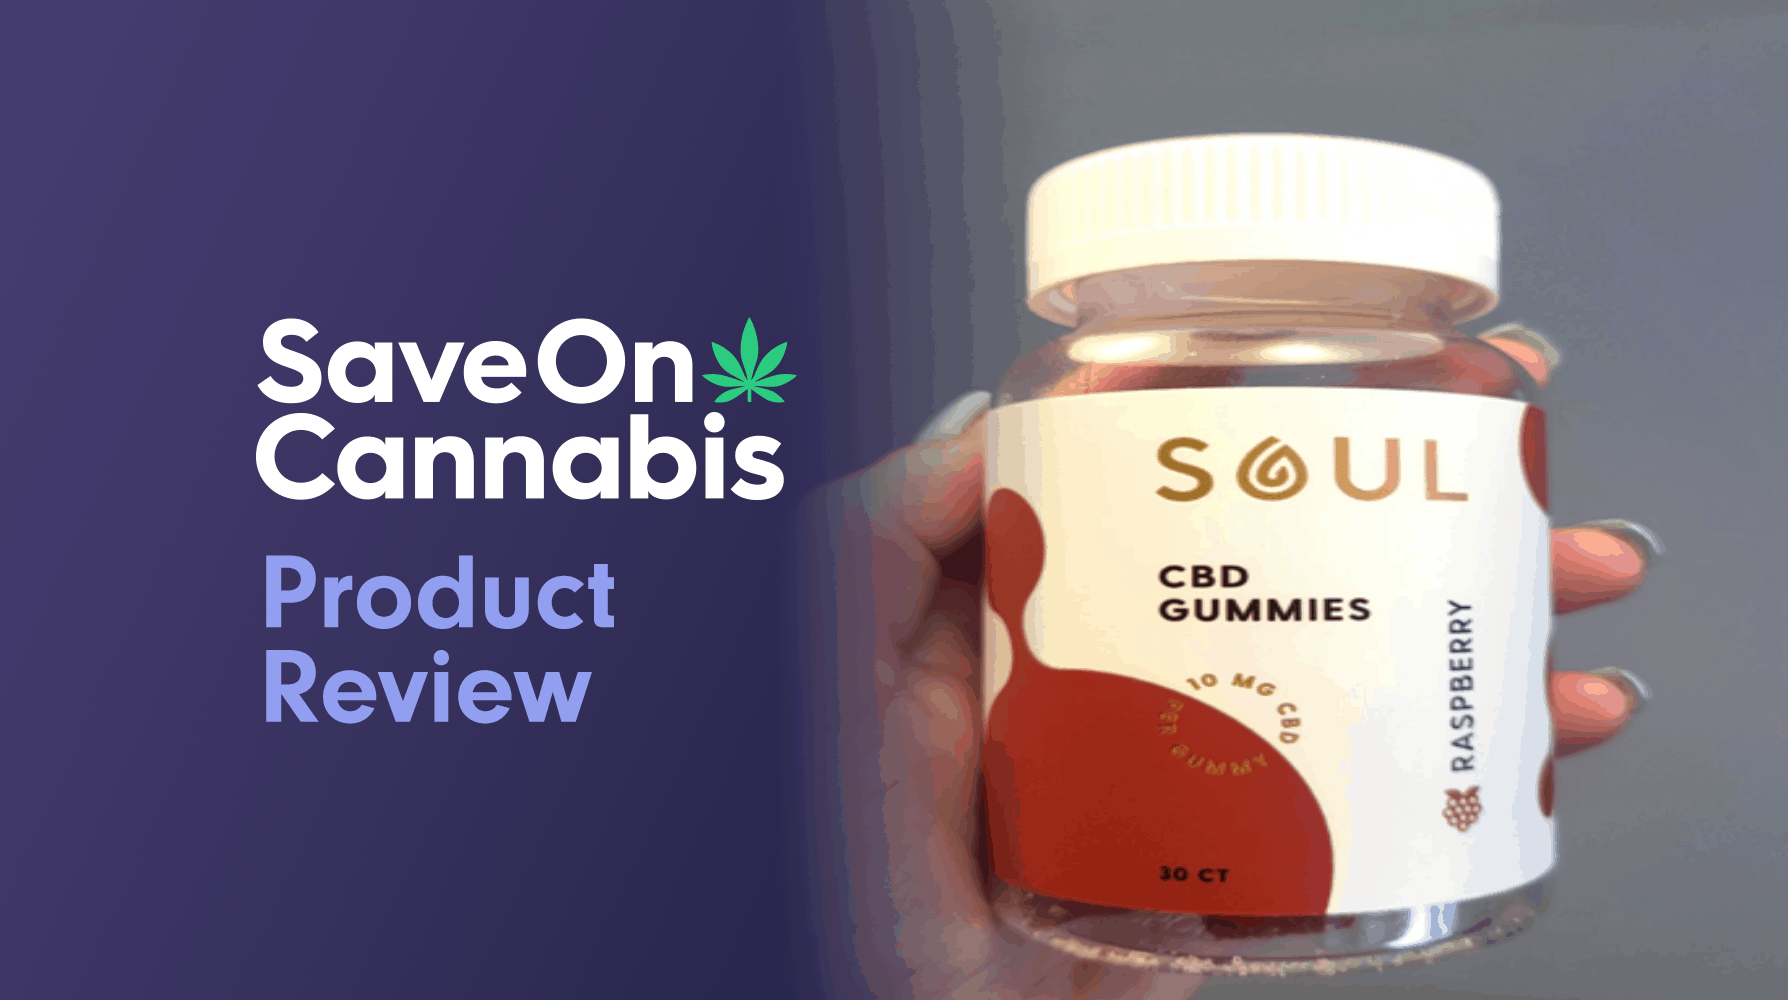 Soul CBD Gummies Save On Cannabis Review Website